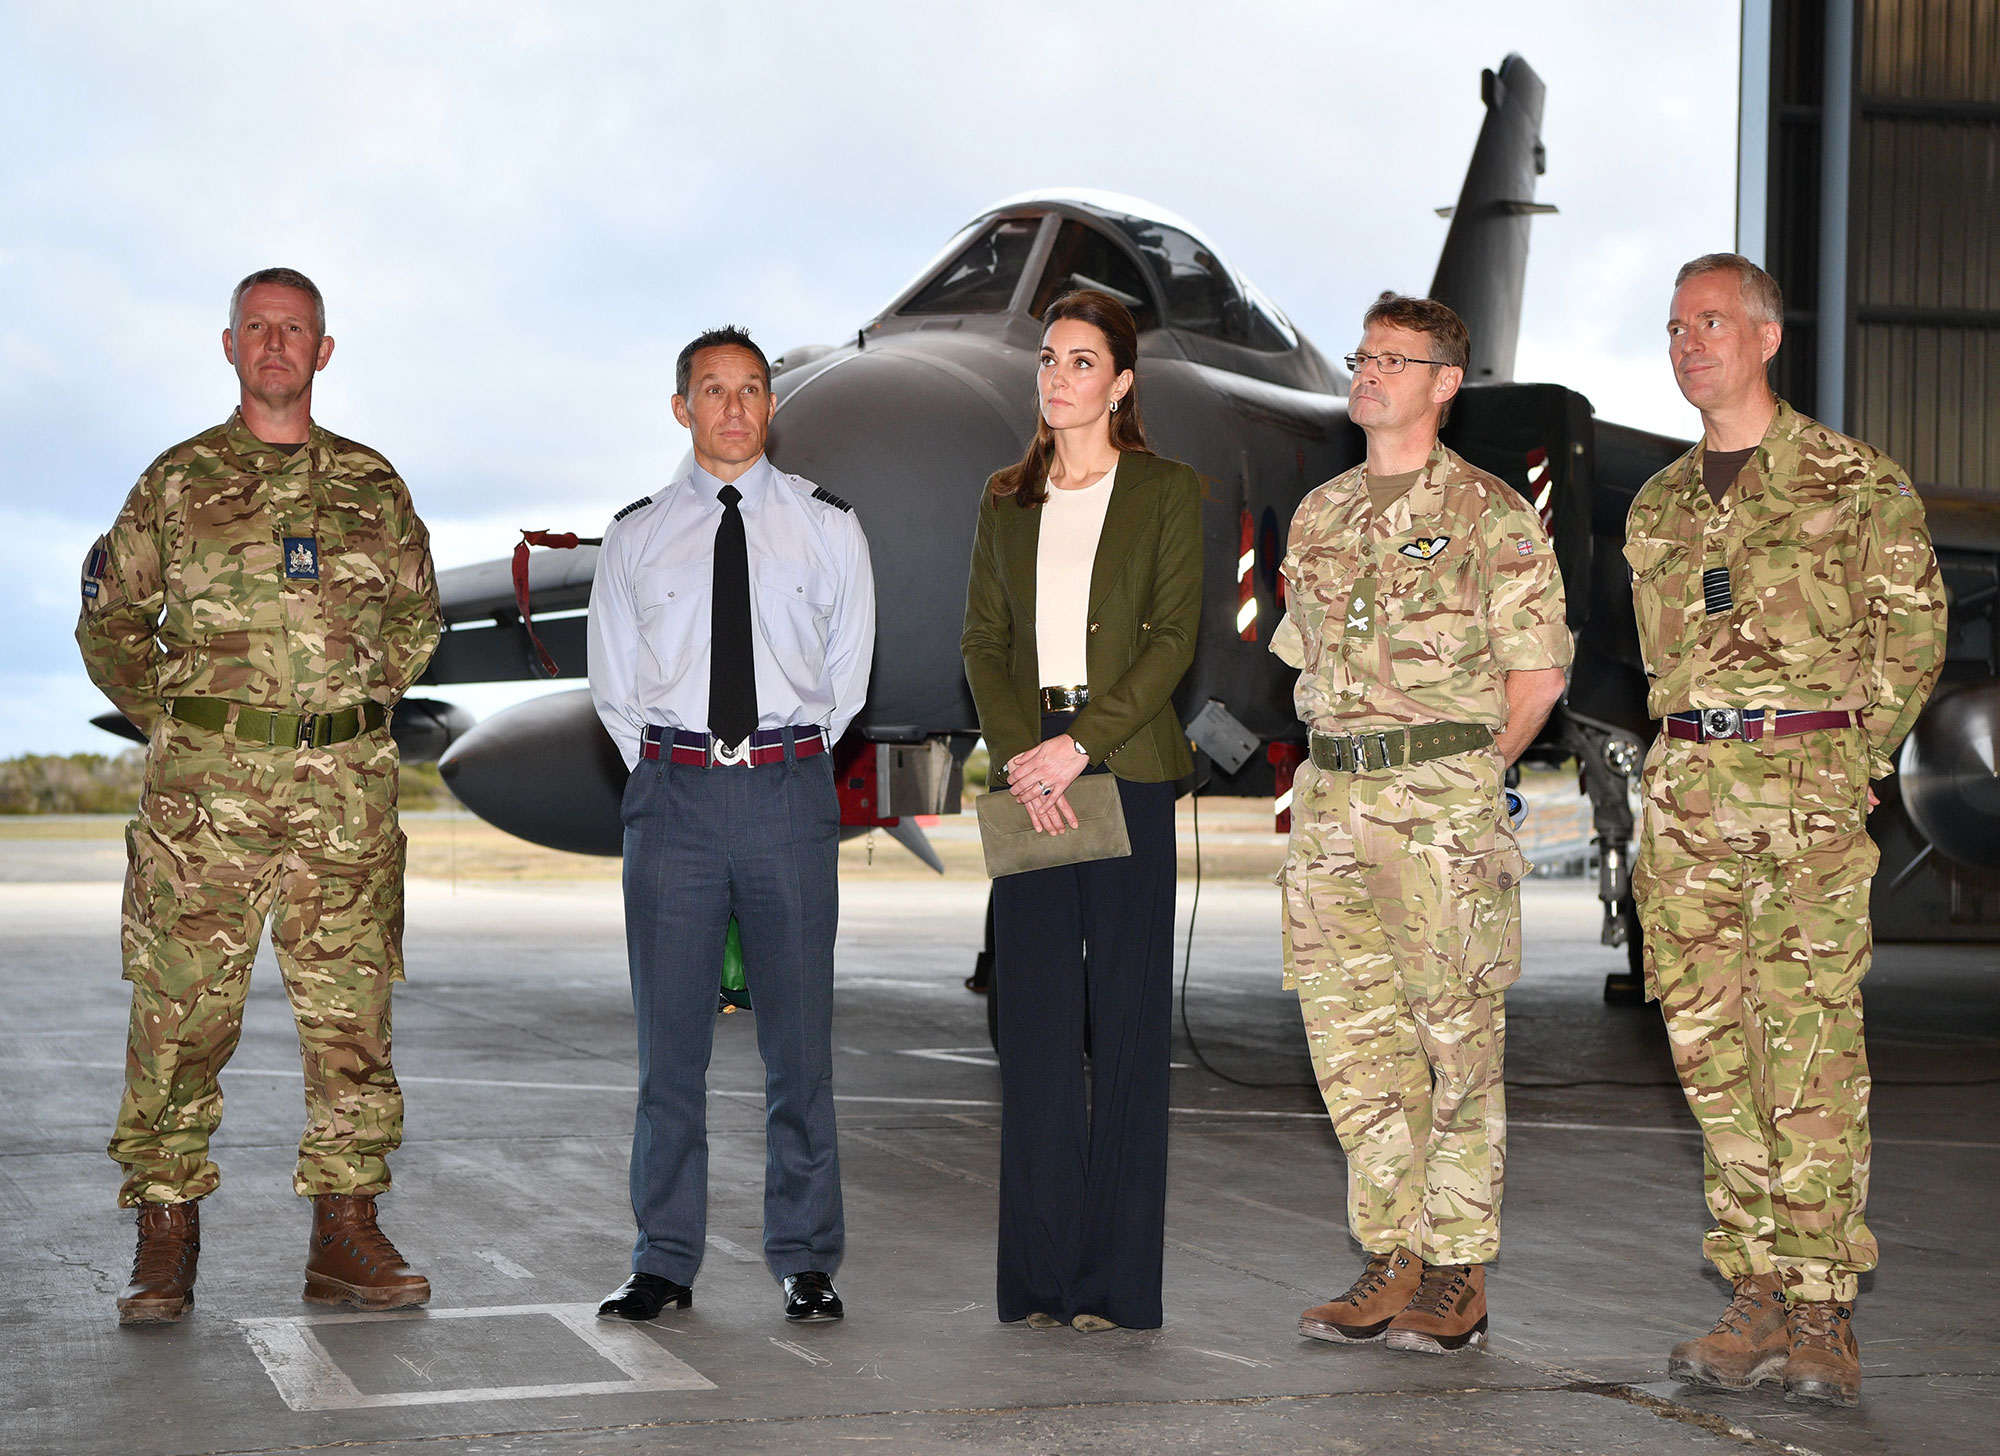 Prince William and Catherine Duchess of Cambridge visit military personnel, Cyprus - 05 Dec 2018